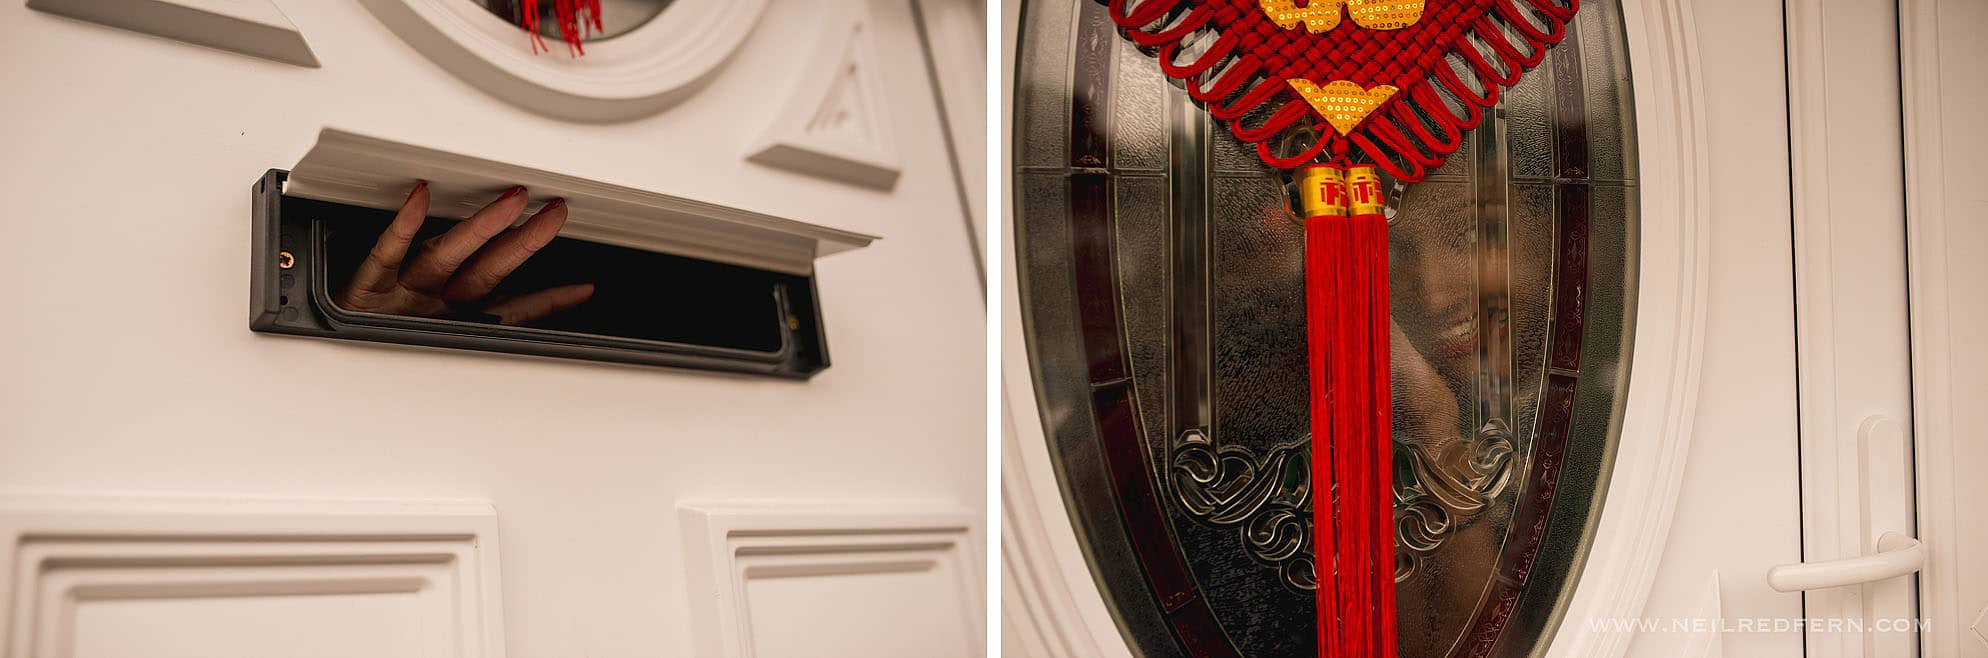 hand through letterbox during Chinese door games